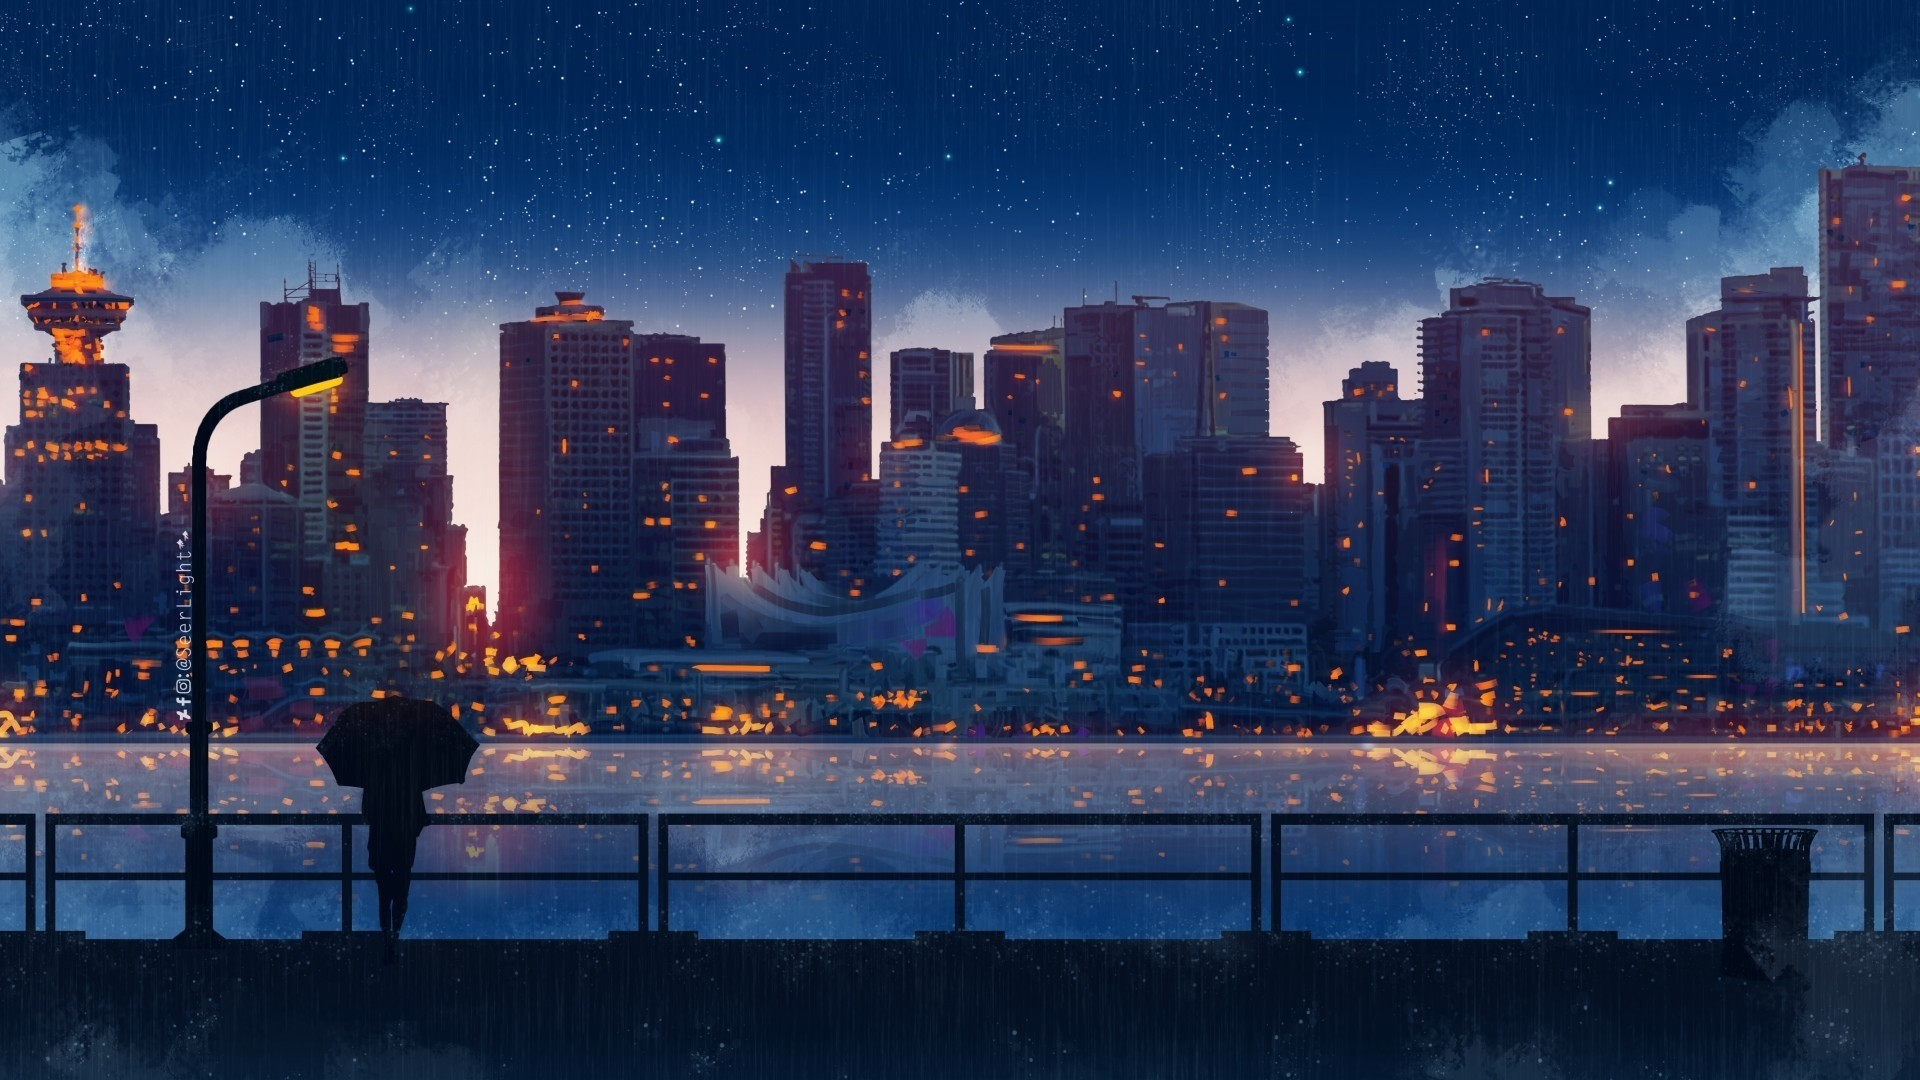 Anime Rain Wallpapers 21 Images Wallpaperboat